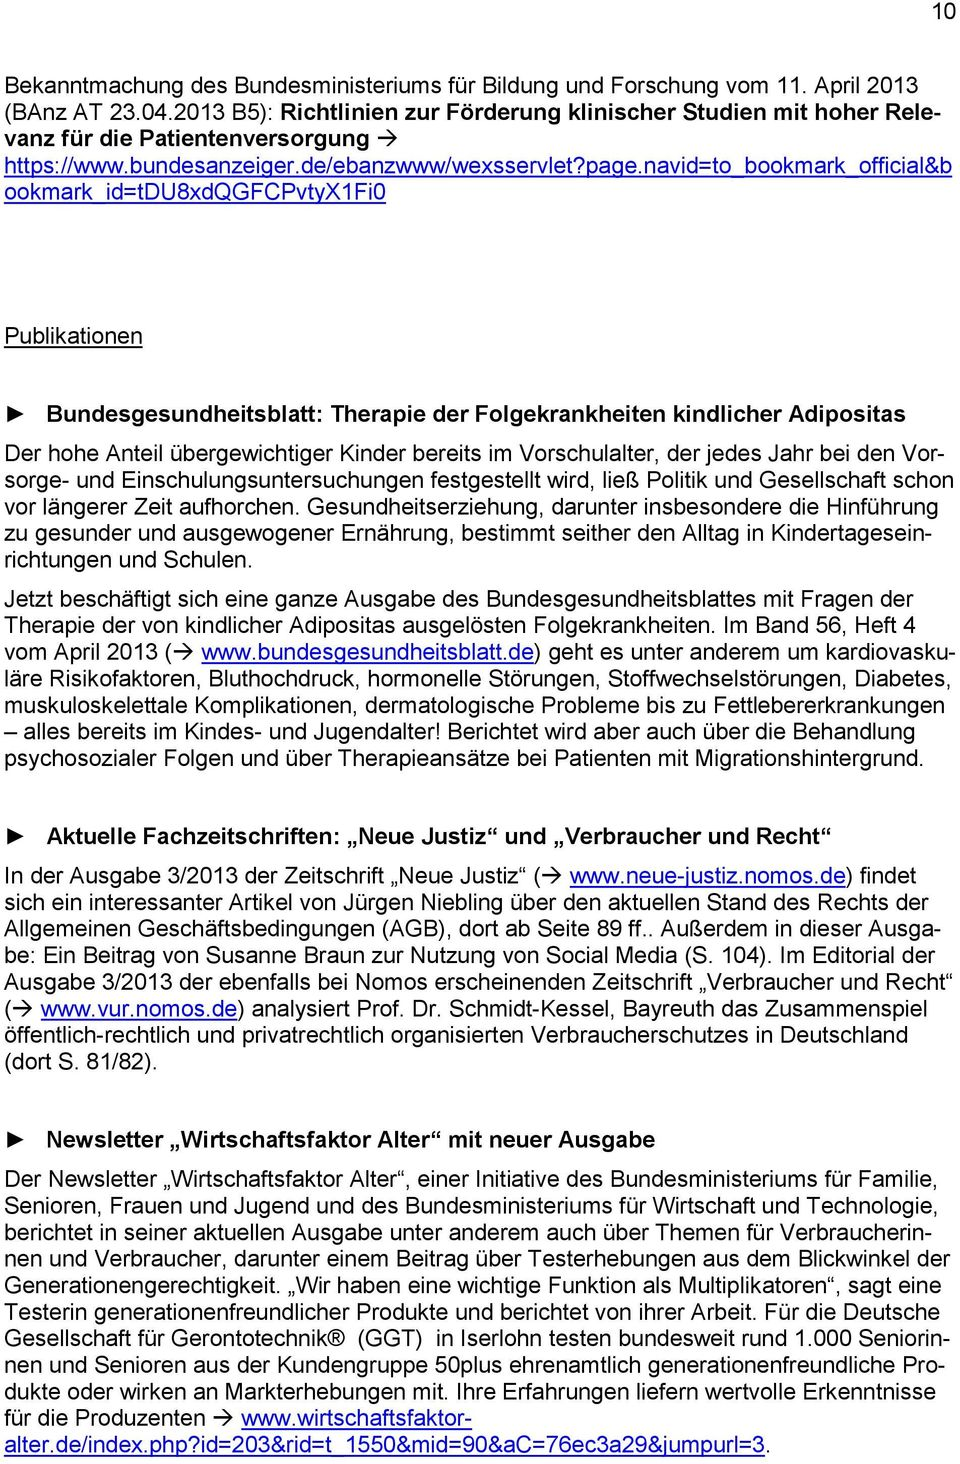 navid=to_bookmark_official&b ookmark_id=tdu8xdqgfcpvtyx1fi0 Publikationen Bundesgesundheitsblatt: Therapie der Folgekrankheiten kindlicher Adipositas Der hohe Anteil übergewichtiger Kinder bereits im